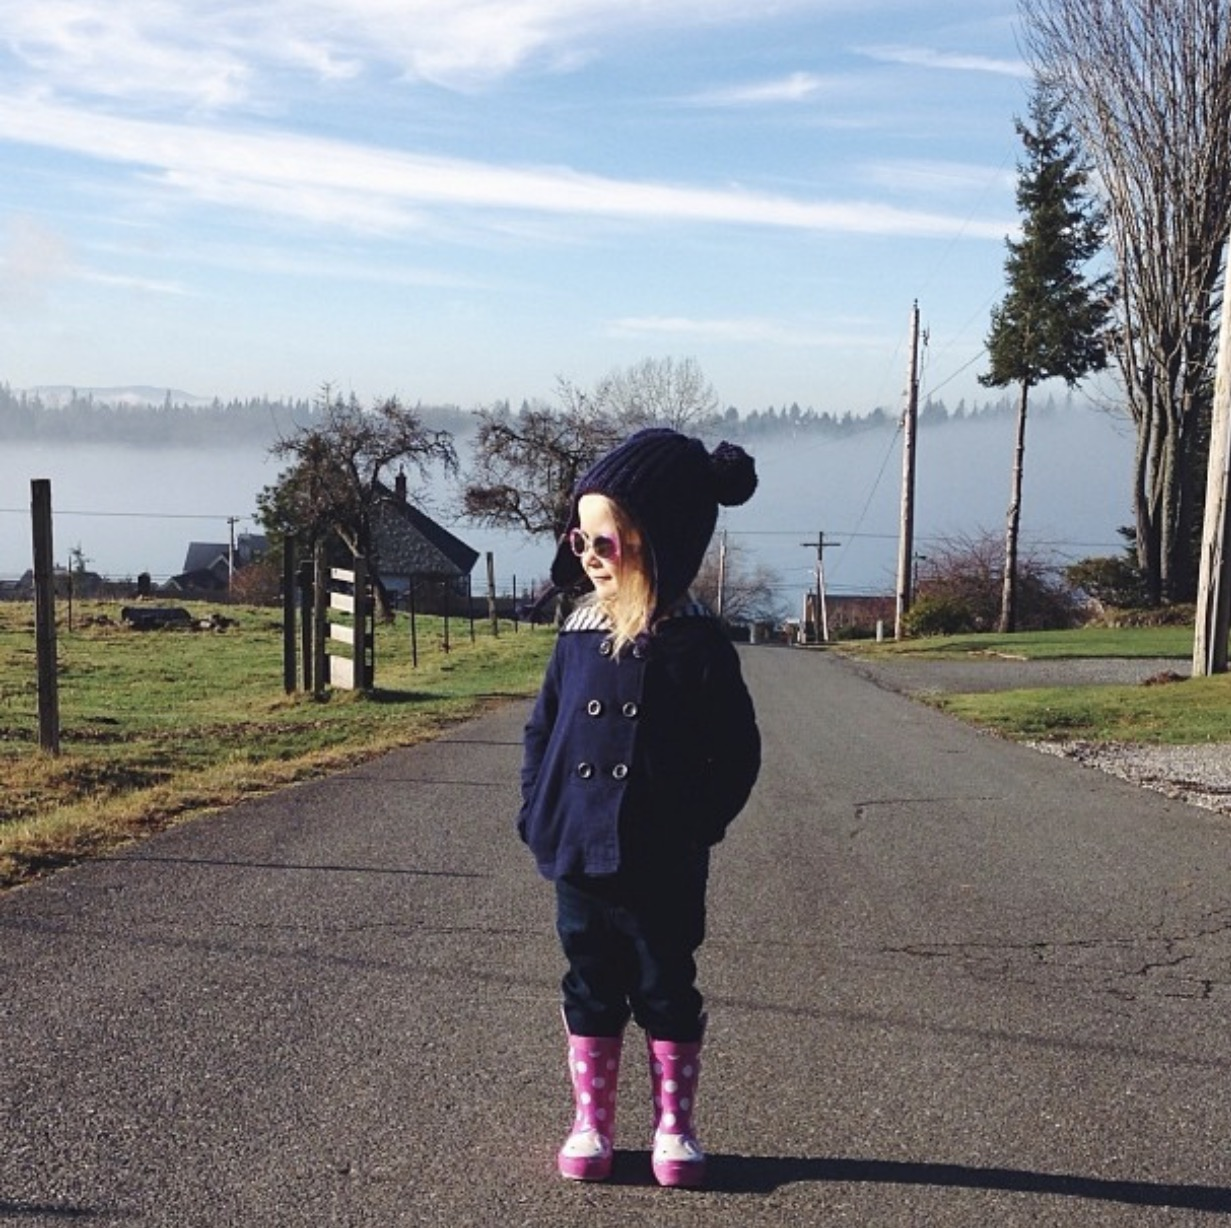 Our oldest daughter on a walk to see the cows in the Silver Beach neighborhood near Lake Whatcom.